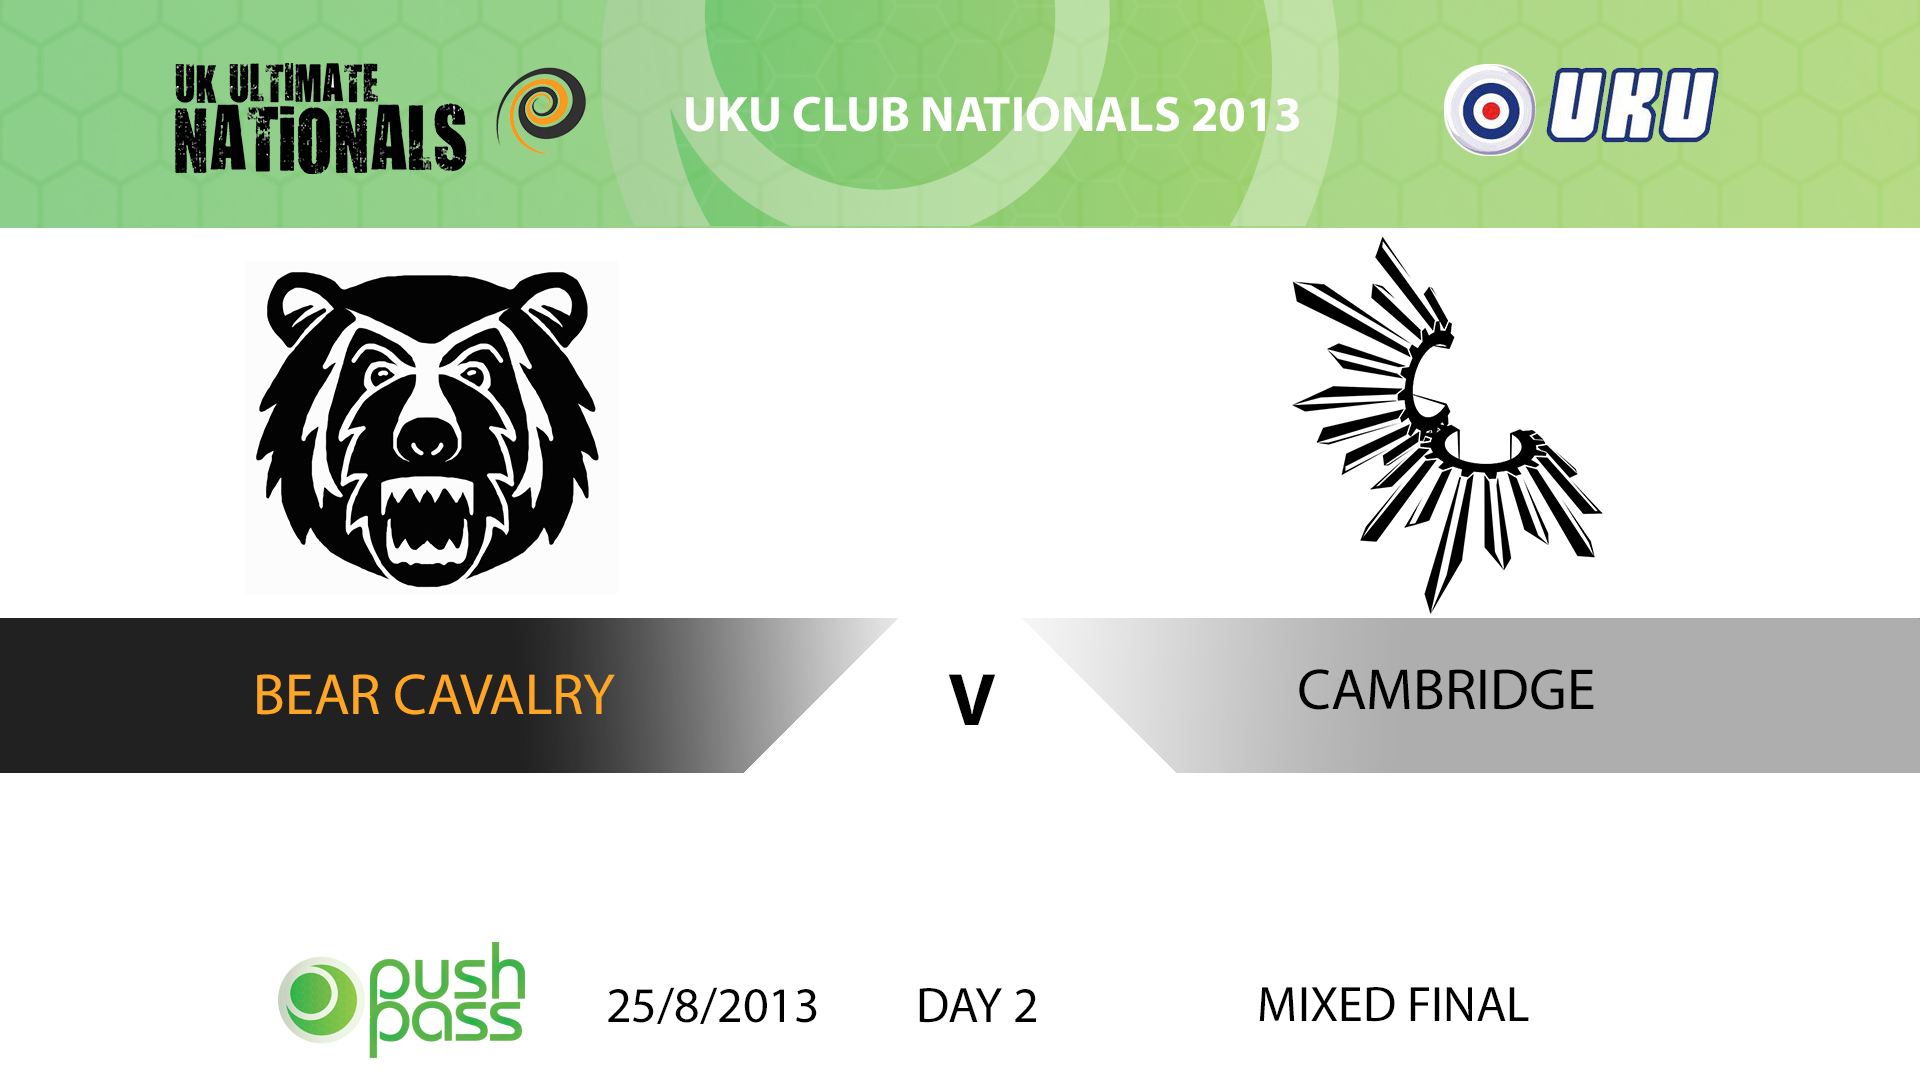 UKU Club Nationals 2013: Mixed Final - Bear Cavalry v Cambridge